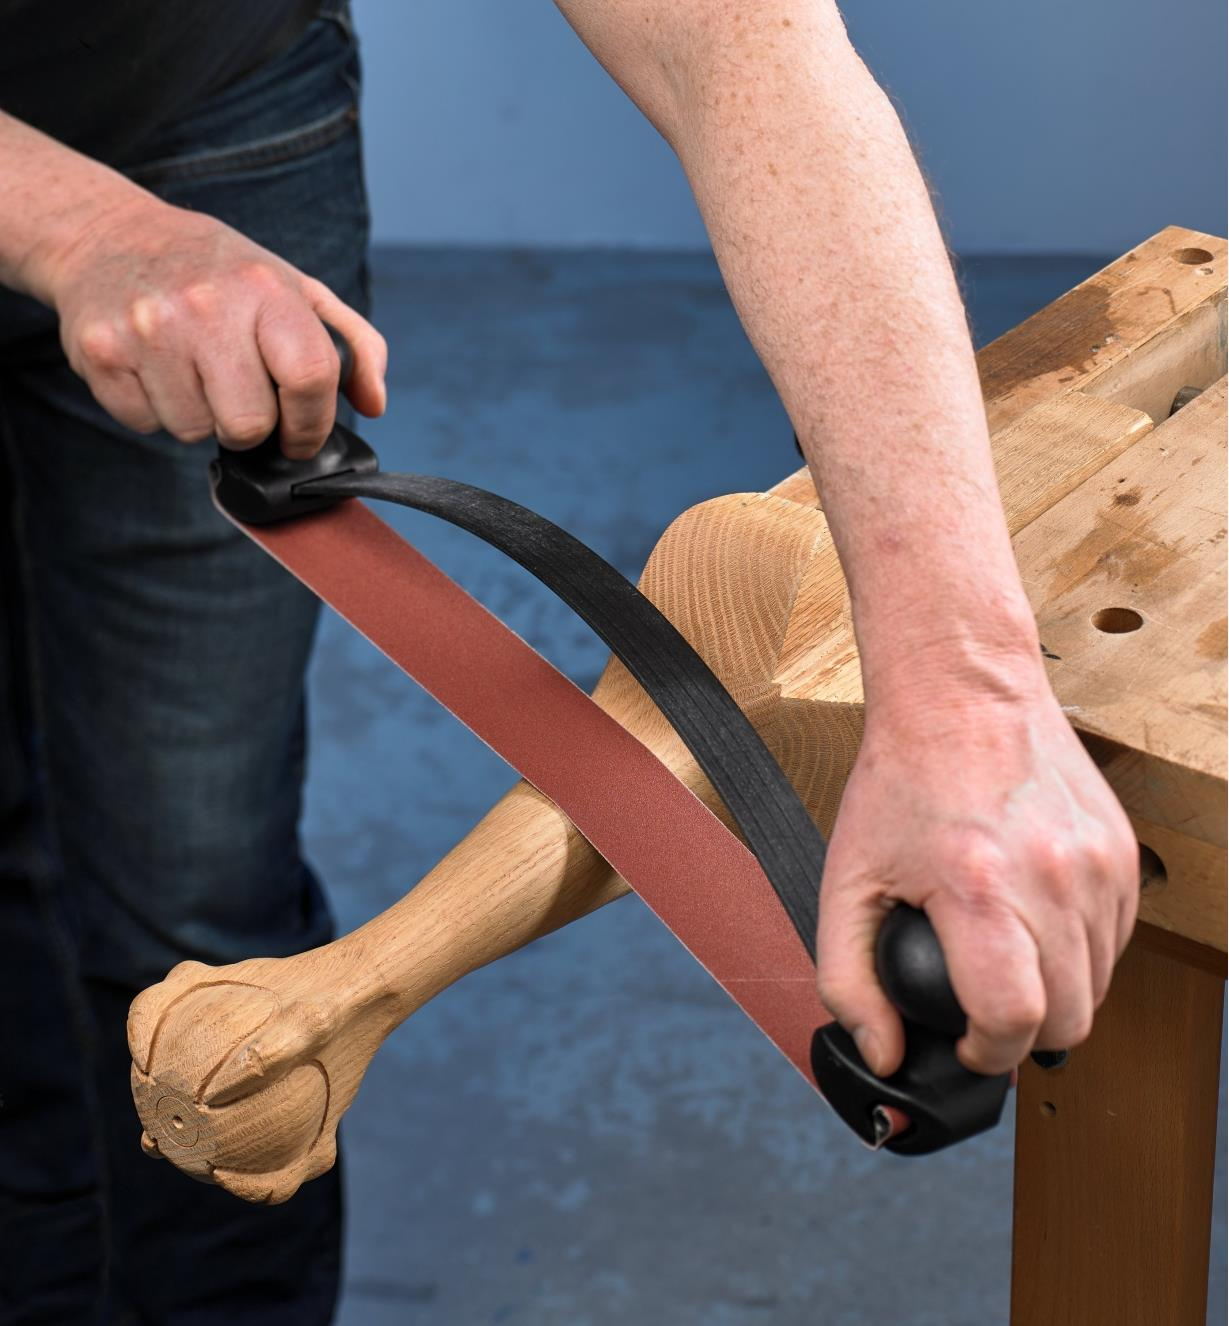 Sanding a chair leg with the Large Bow Sander